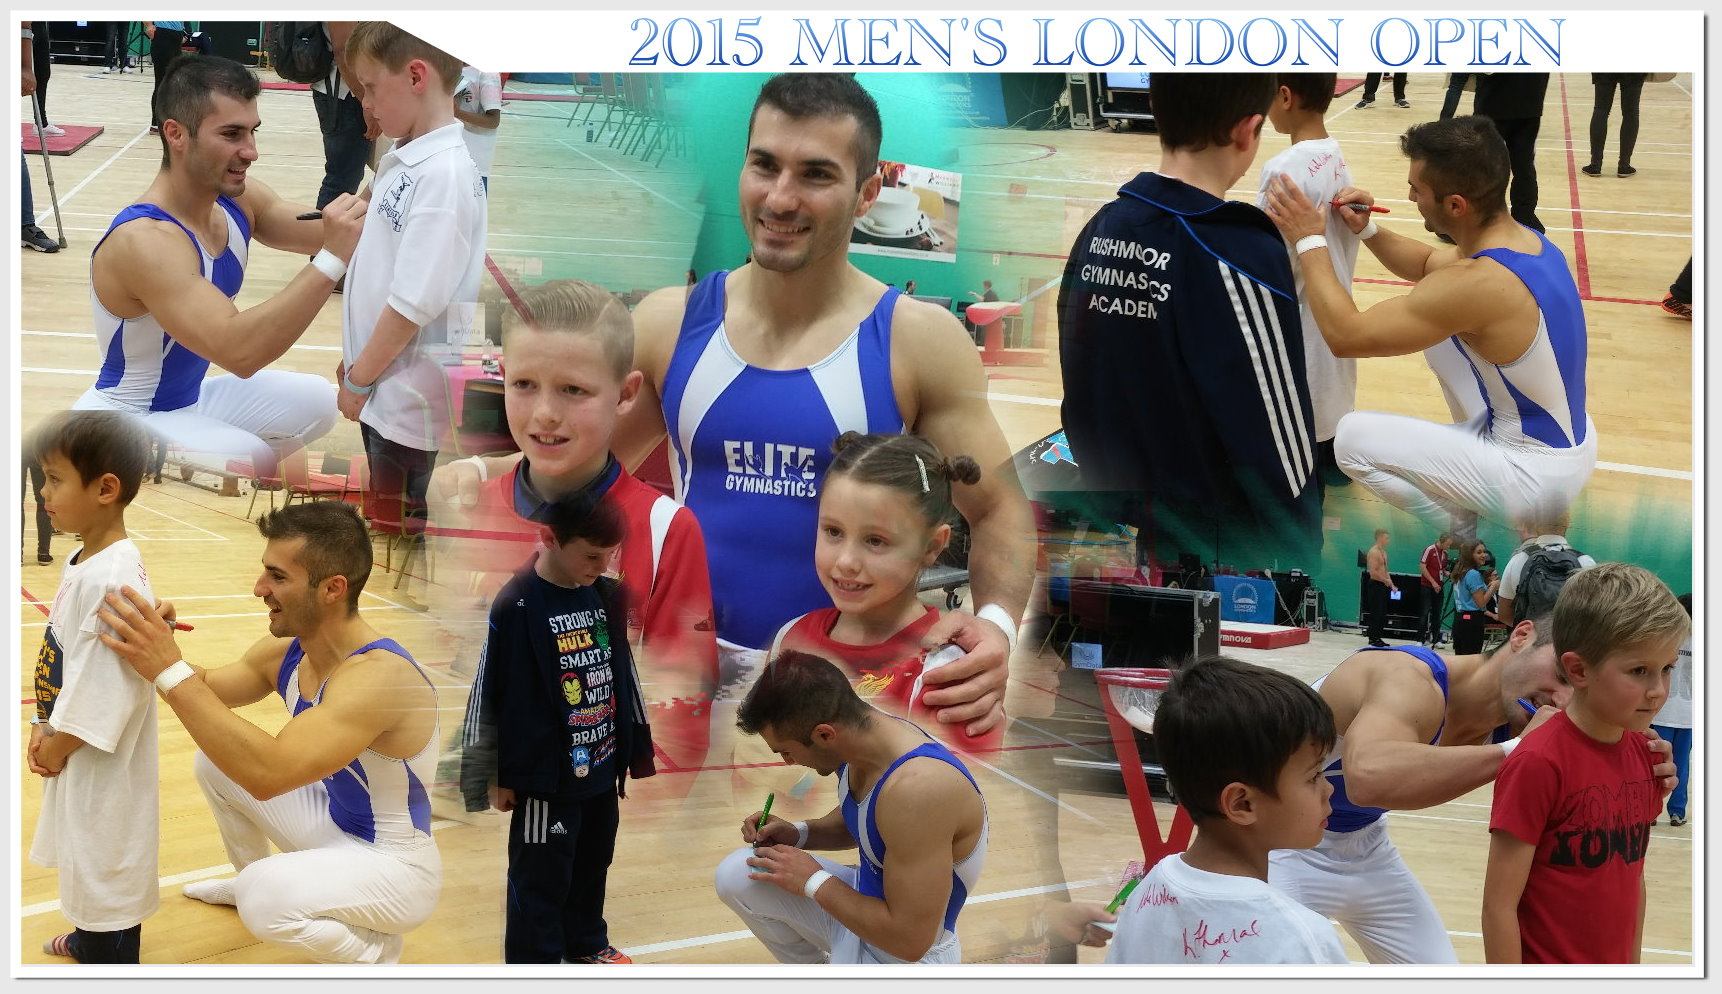 2015 London Open Gymnastics Championships